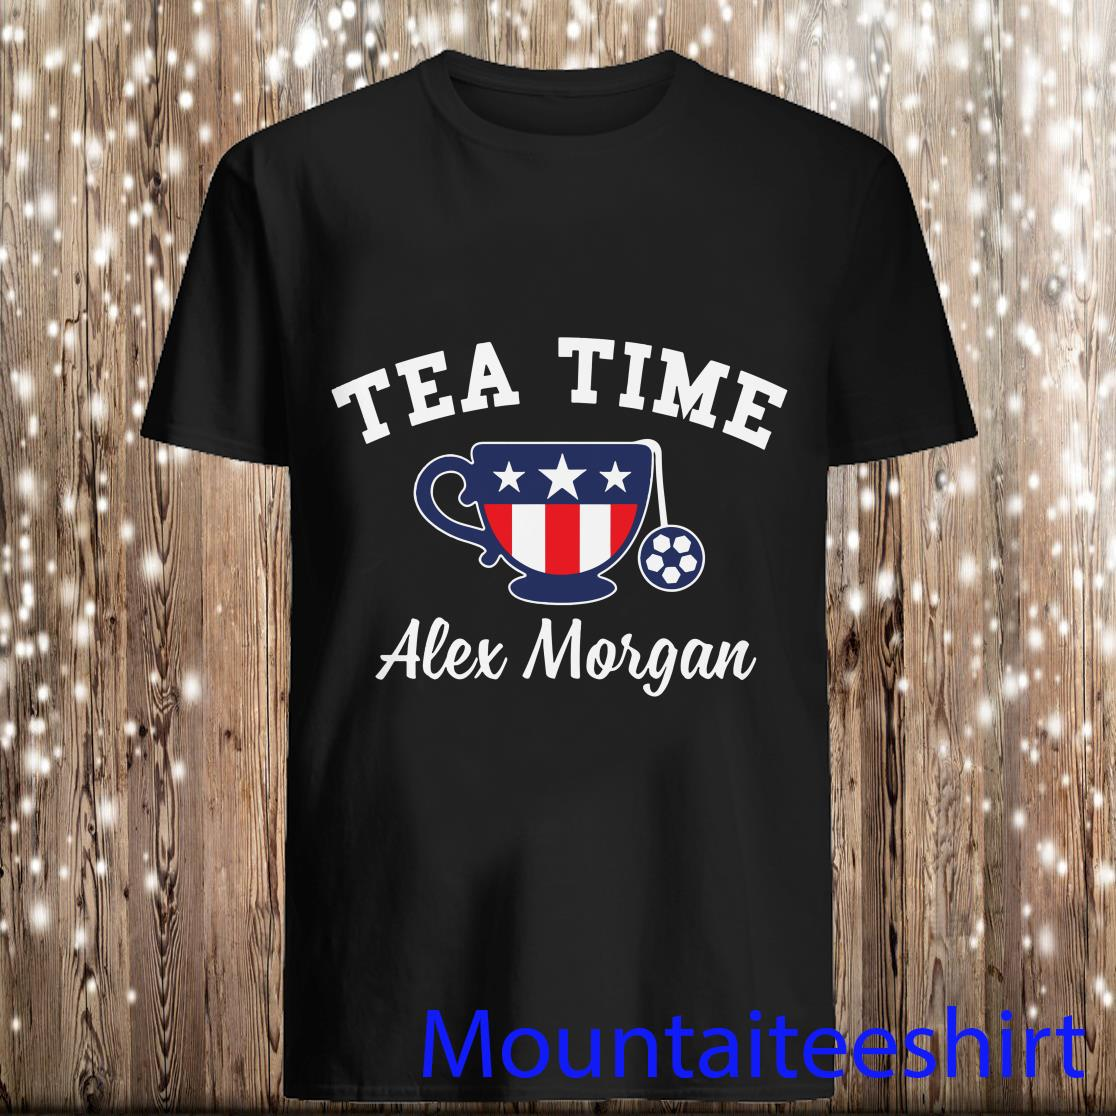 Alex Morgan Tea Time Shirt